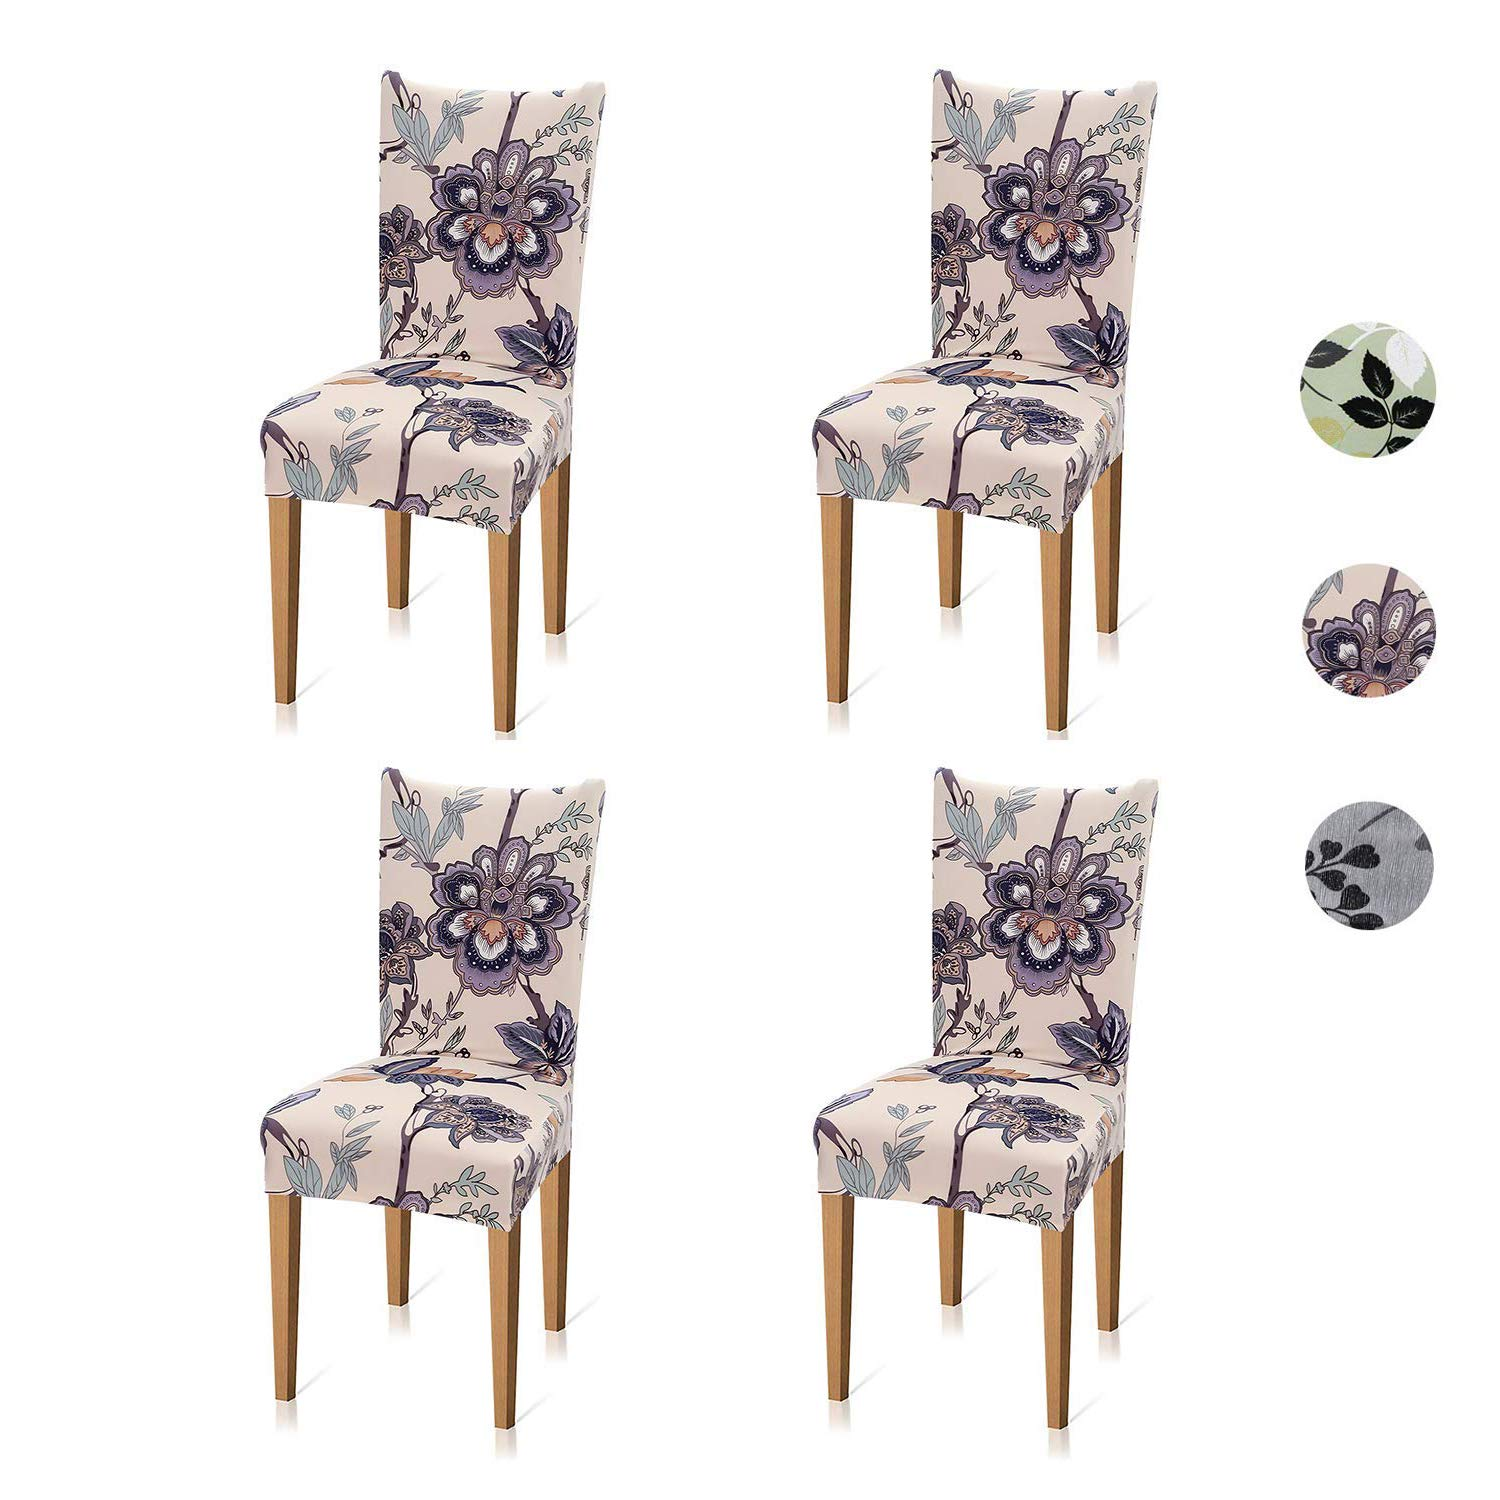 Xflyee Stretch Dining Room Chair Covers Jacquard Removable Washable Kitchen Parson Slipcovers Set Of 4 A Pack